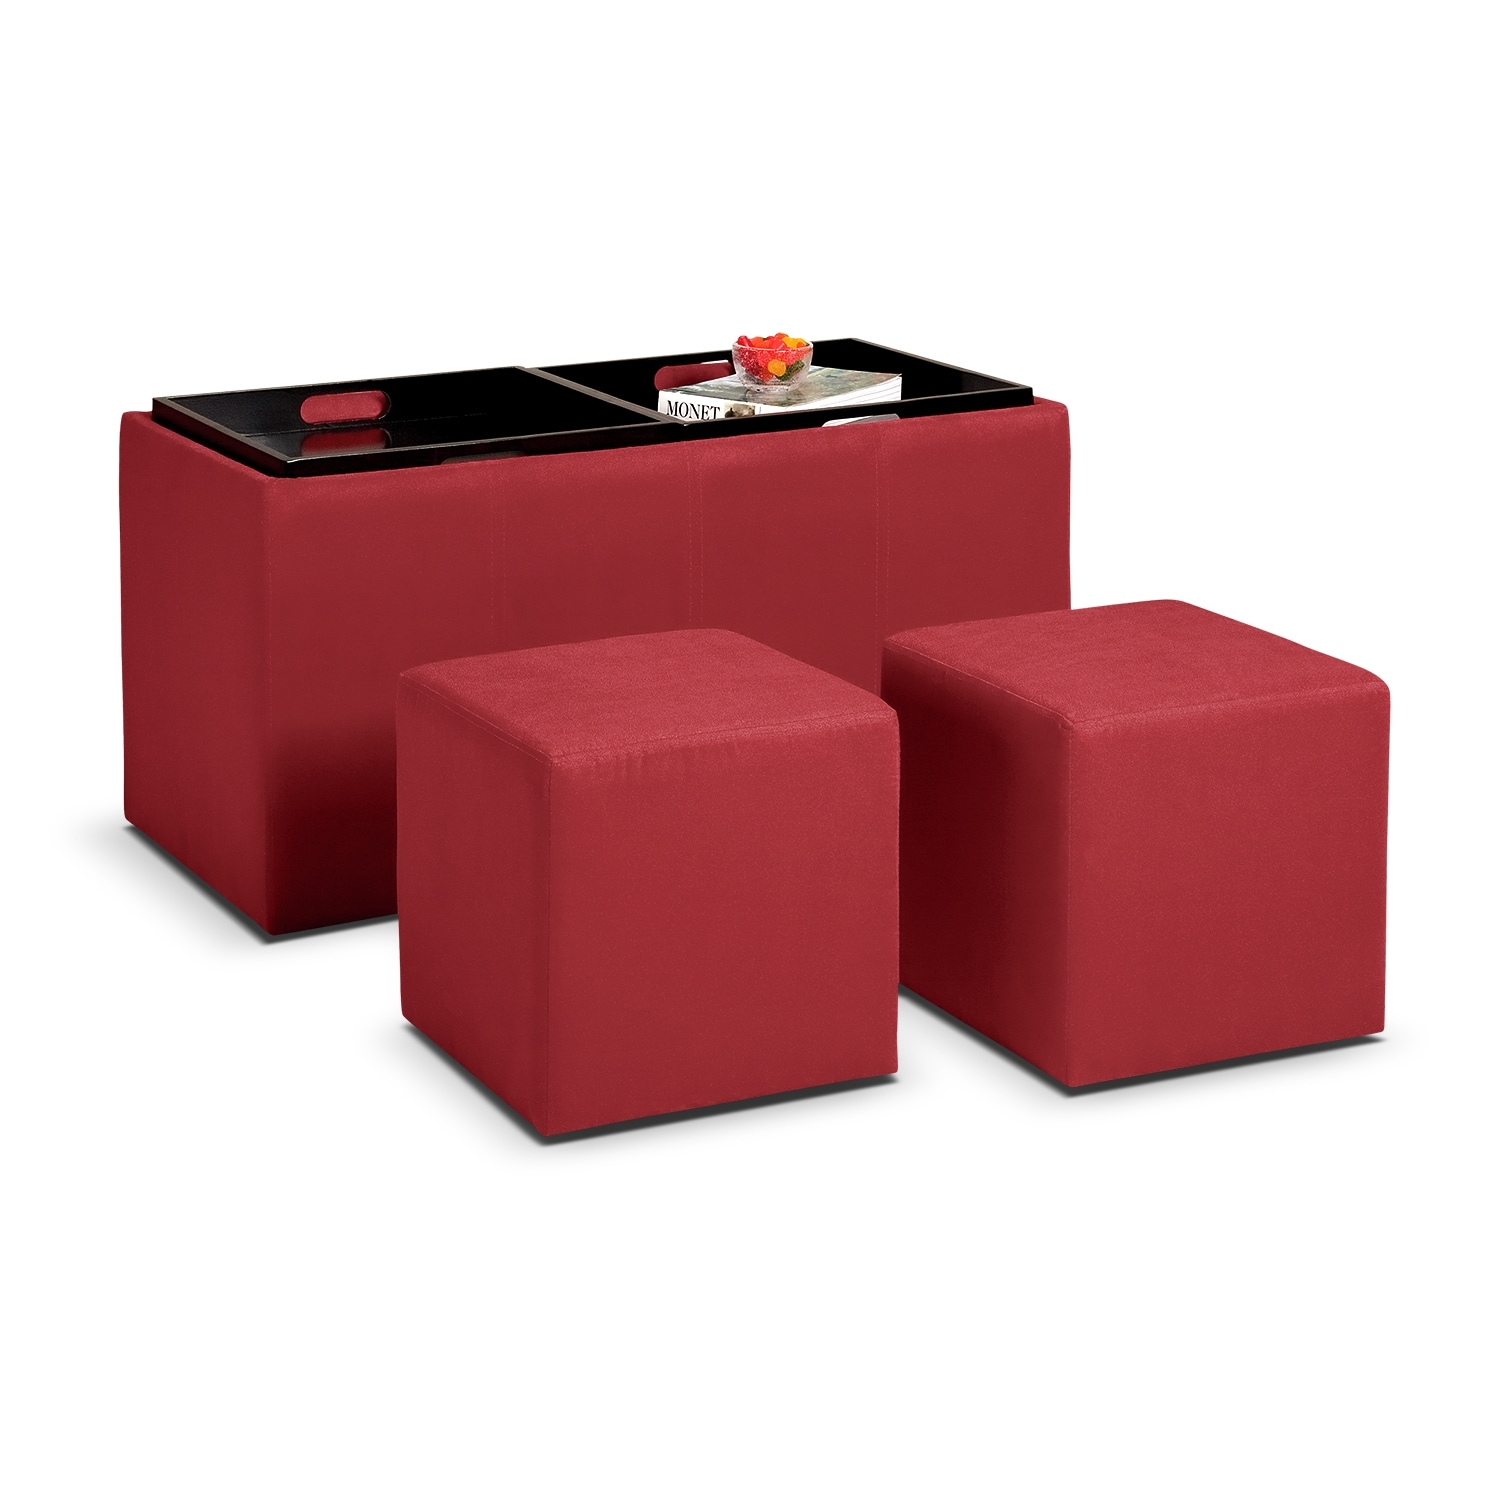 Tiffany 3-Piece Storage Ottoman with Trays - Red